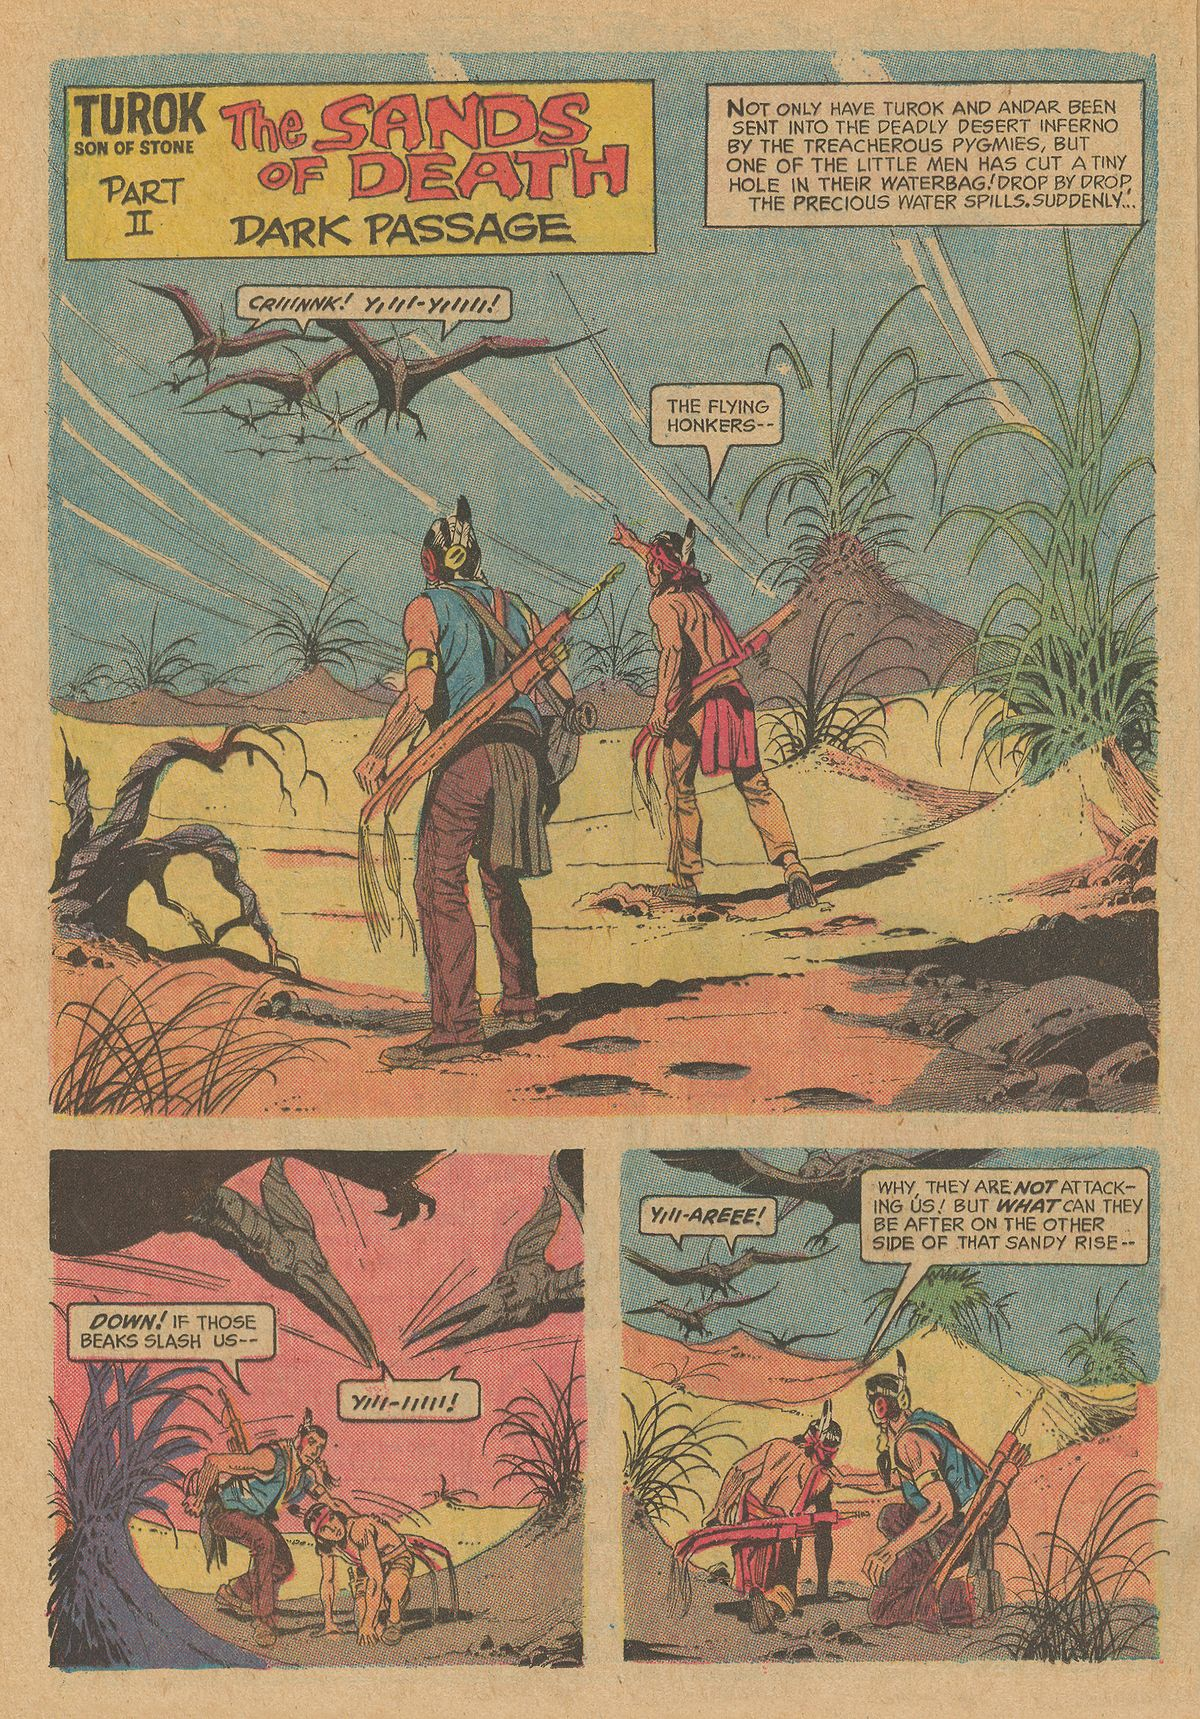 Read online Turok, Son of Stone comic -  Issue #83 - 20